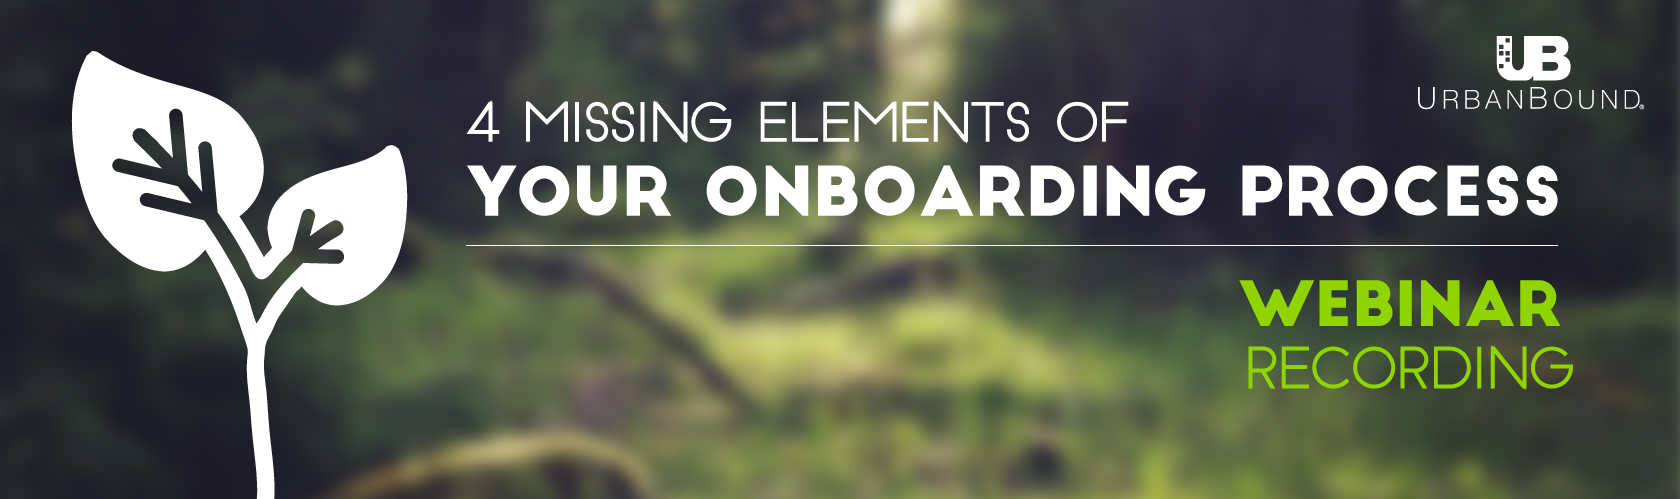 4 missing elements of your onboarding process